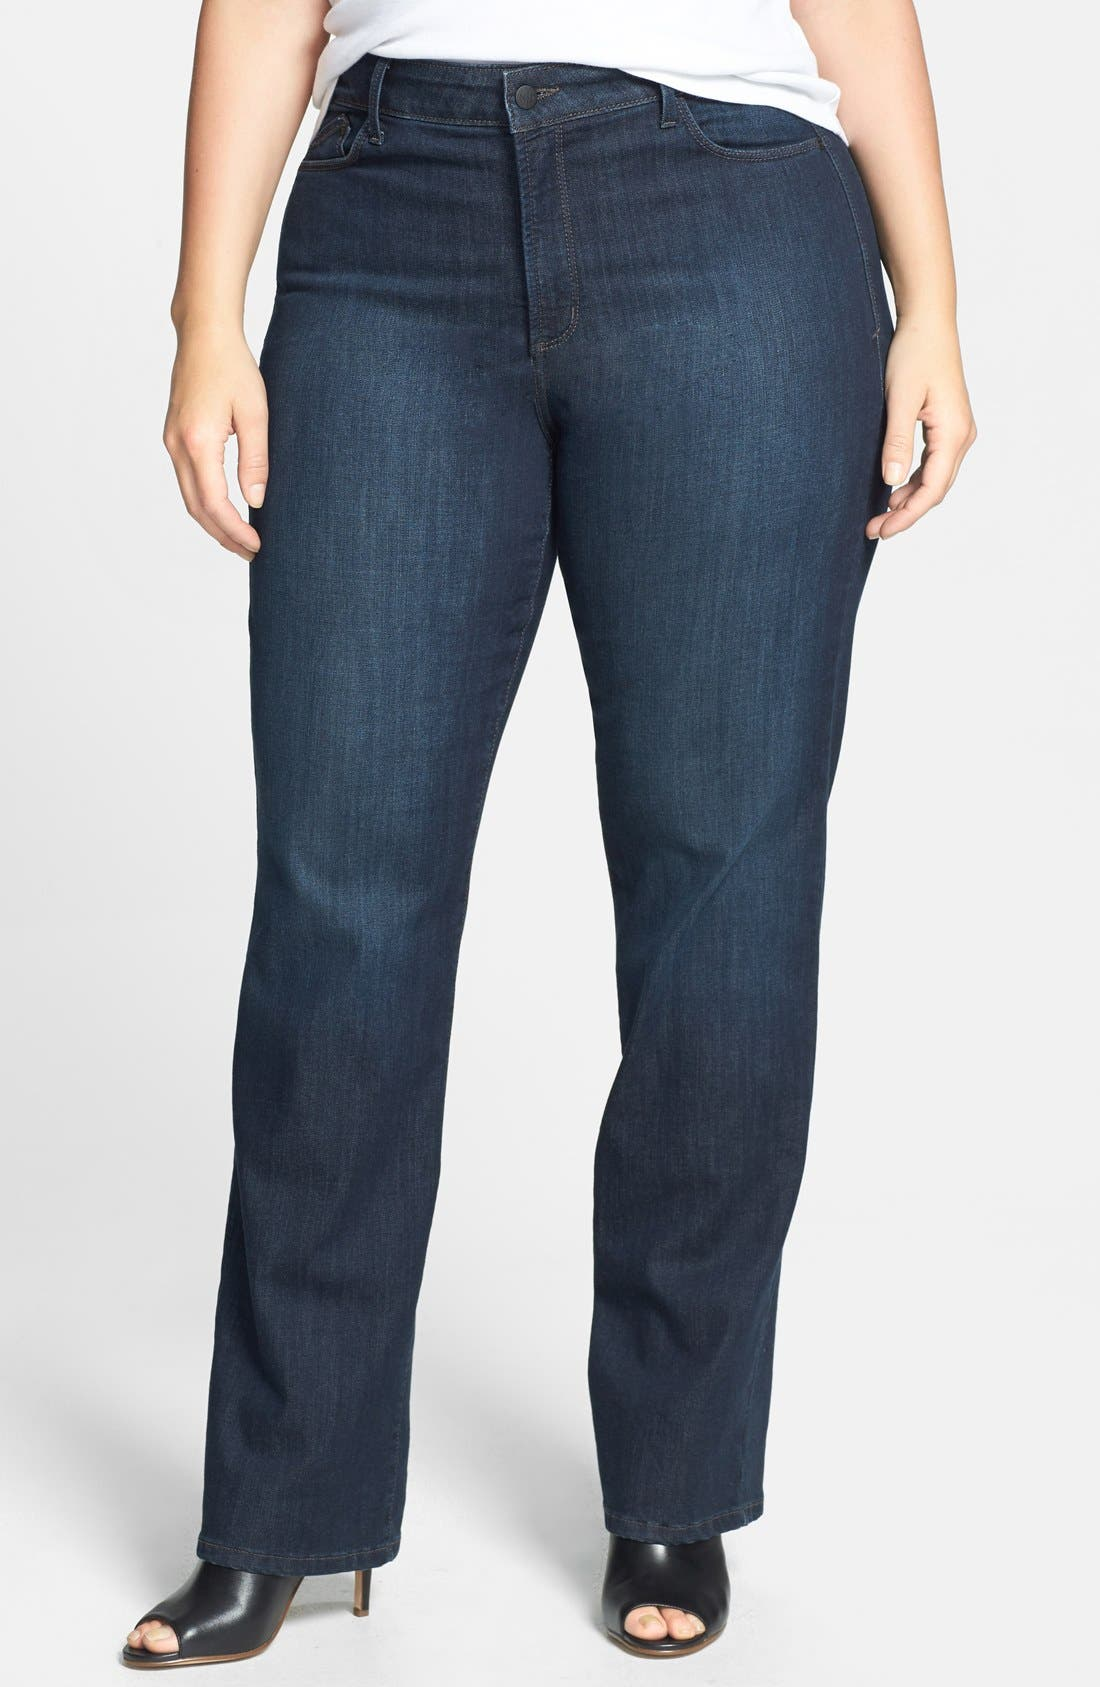 Alternate Image 1 Selected - NYDJ 'Marilyn' Stretch Straight Leg Jeans (Harrington) (Plus Size)